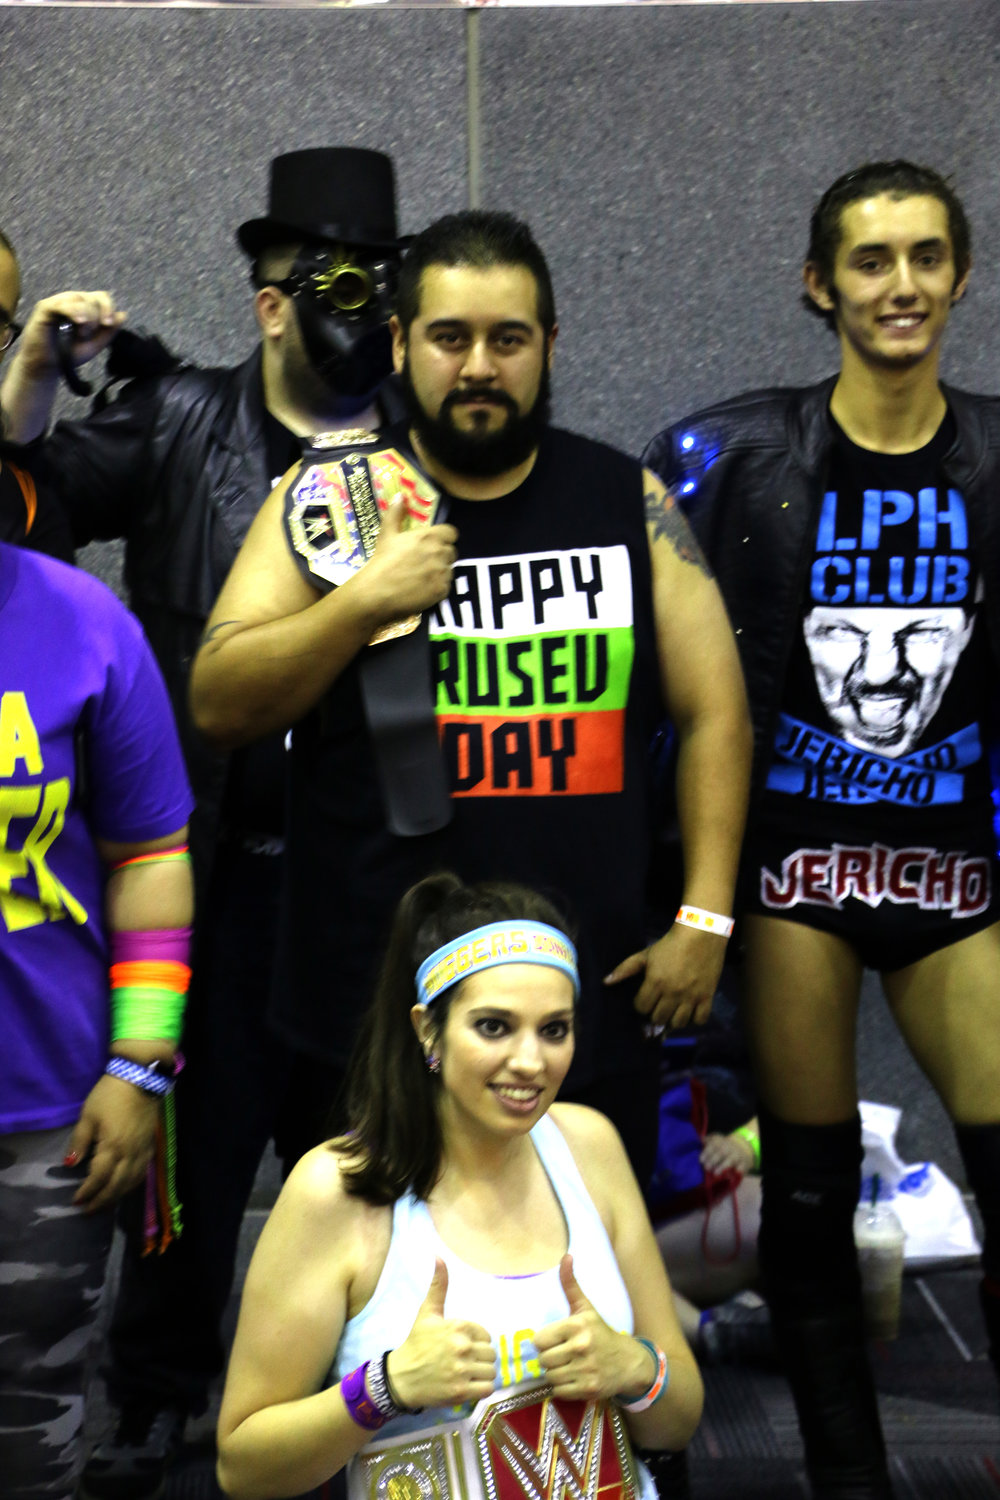 Cosplayers of Marty Scurll, from left, Rusev, Bayley and Chris Jericho.